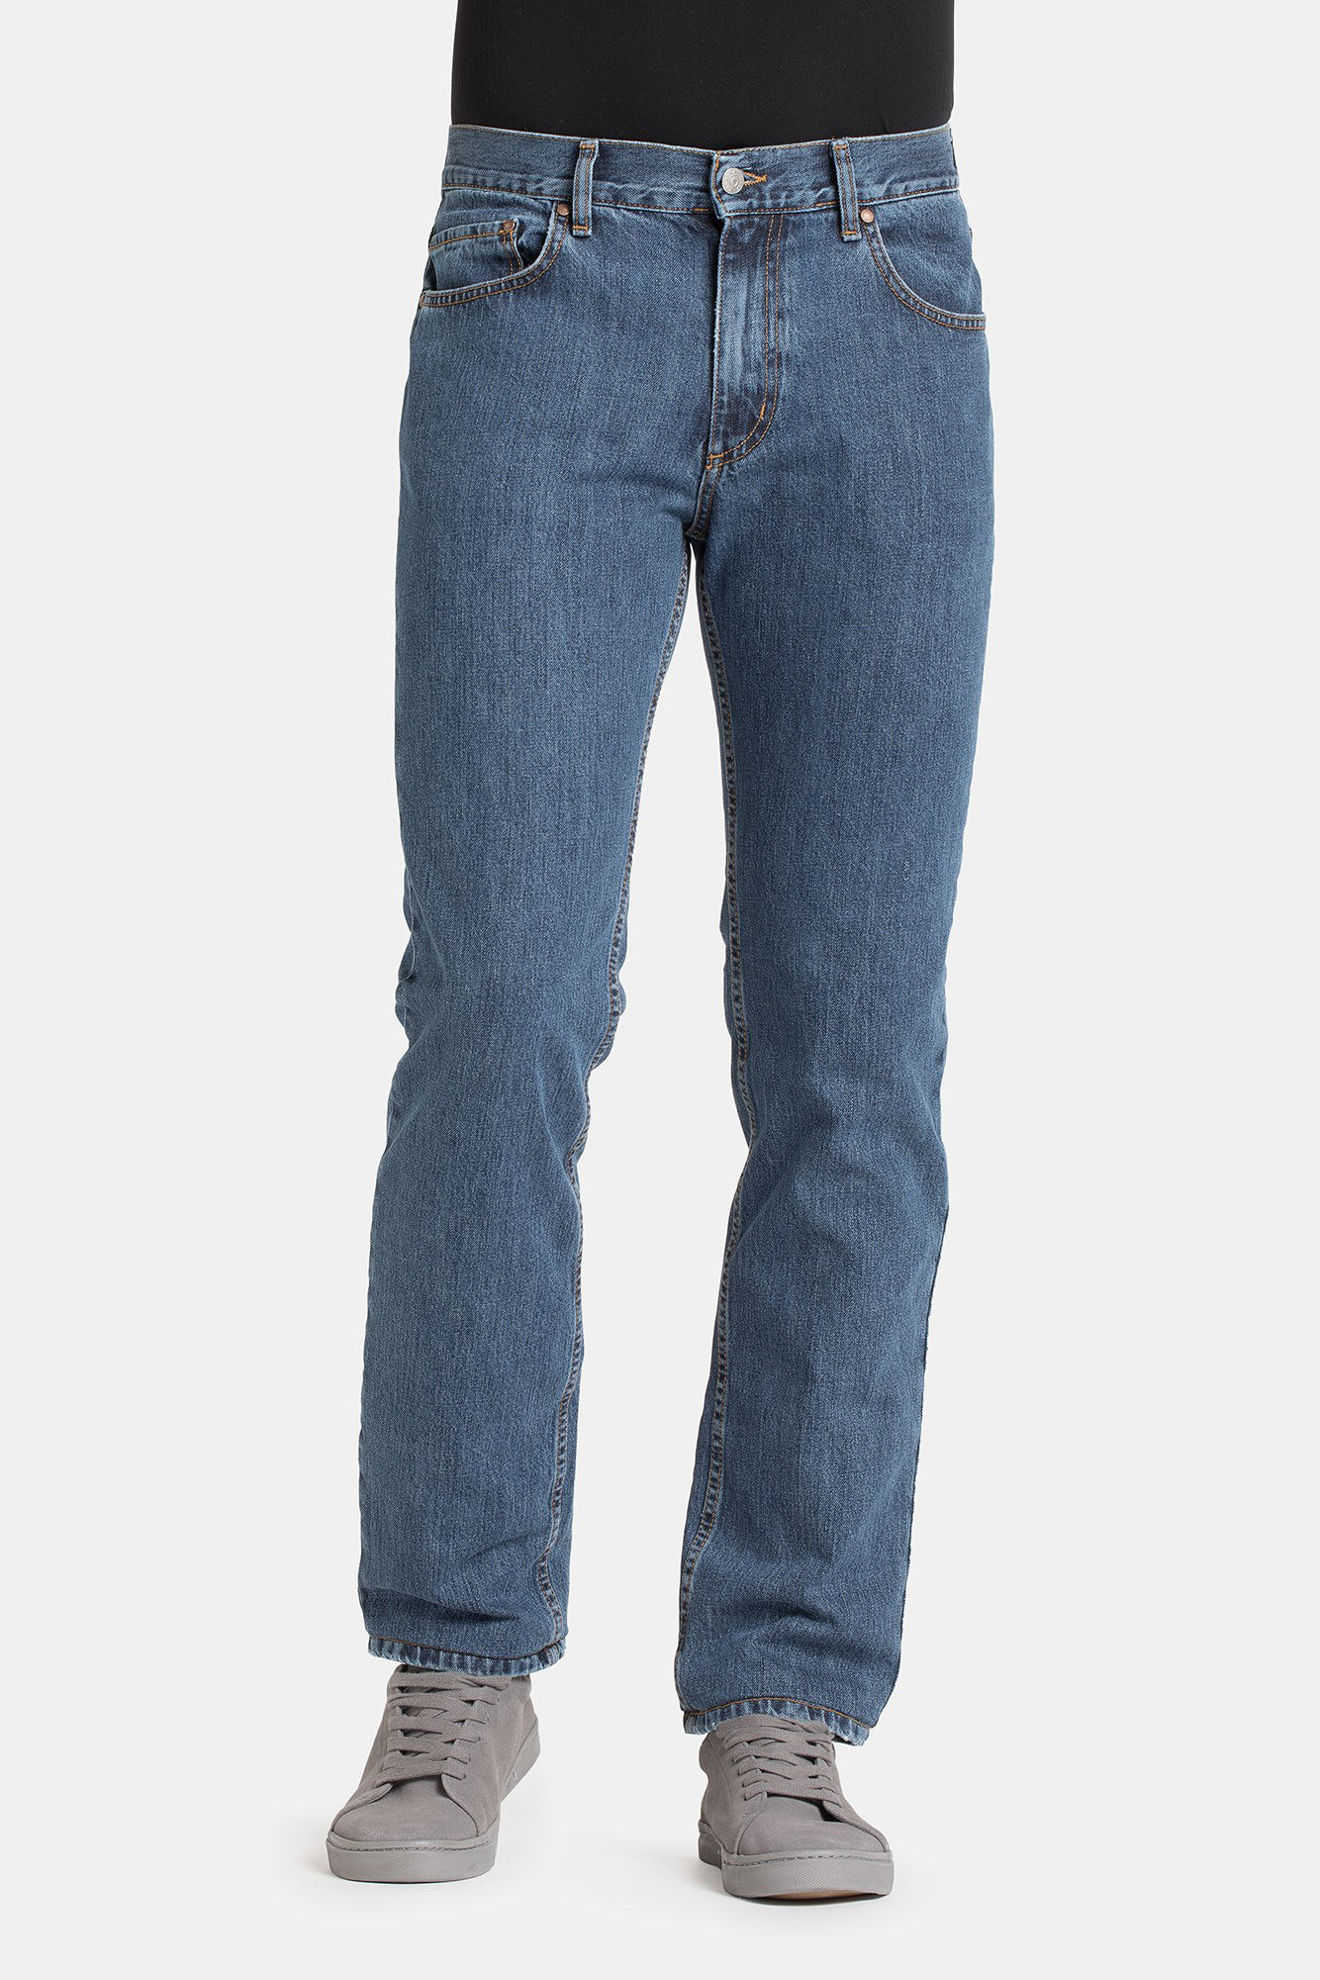 Immagine di CARRERA - JEANS DENIM MEDIO 5 TASCHE 14oz